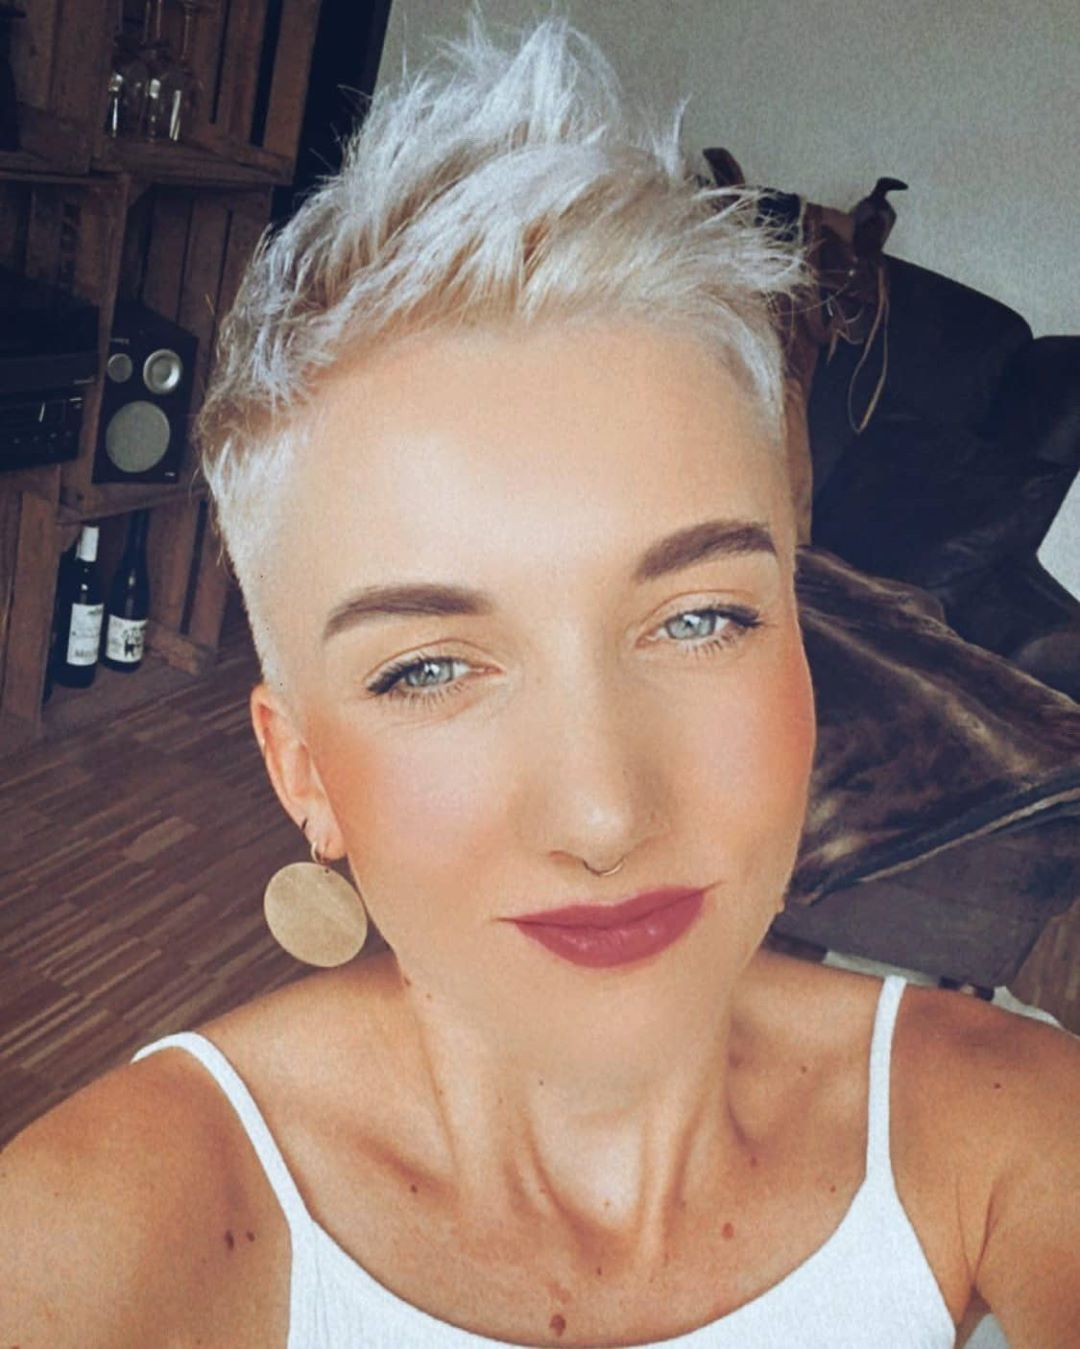 40 Pretty Short Hairstyles for Women Over 50 with Thin Hair (Update 2021) 11dbb562f1632d1cce7389a0aab5743d